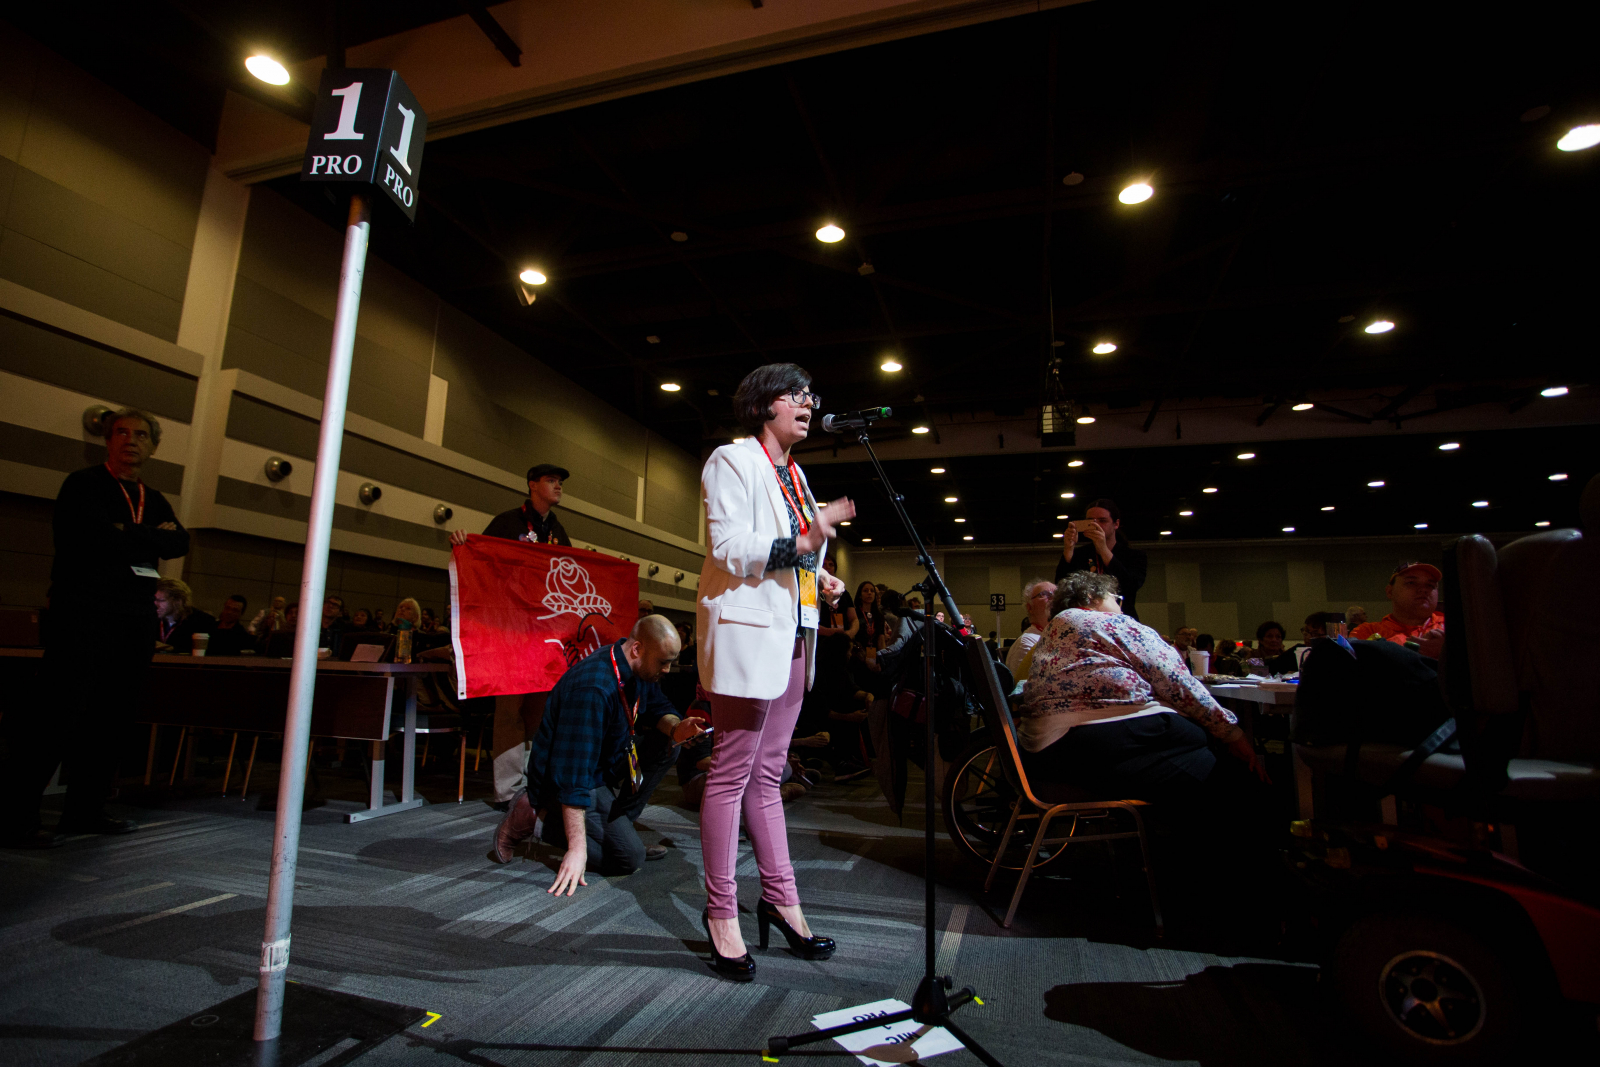 Niki Ashton speaks in support of a motion on Sunday, February 18th 2018, day three of the New Democratic Party 2018 policy convention held at the Shaw Convention Centre in Ottawa. Photo by Alex Tétreault